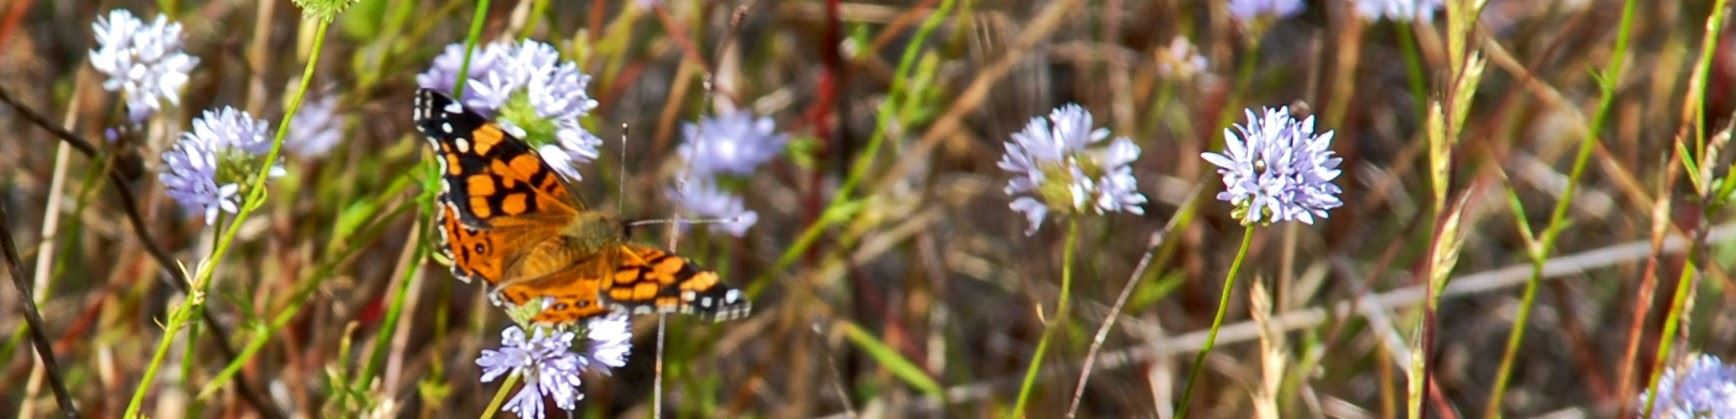 Butterfly in grasslands